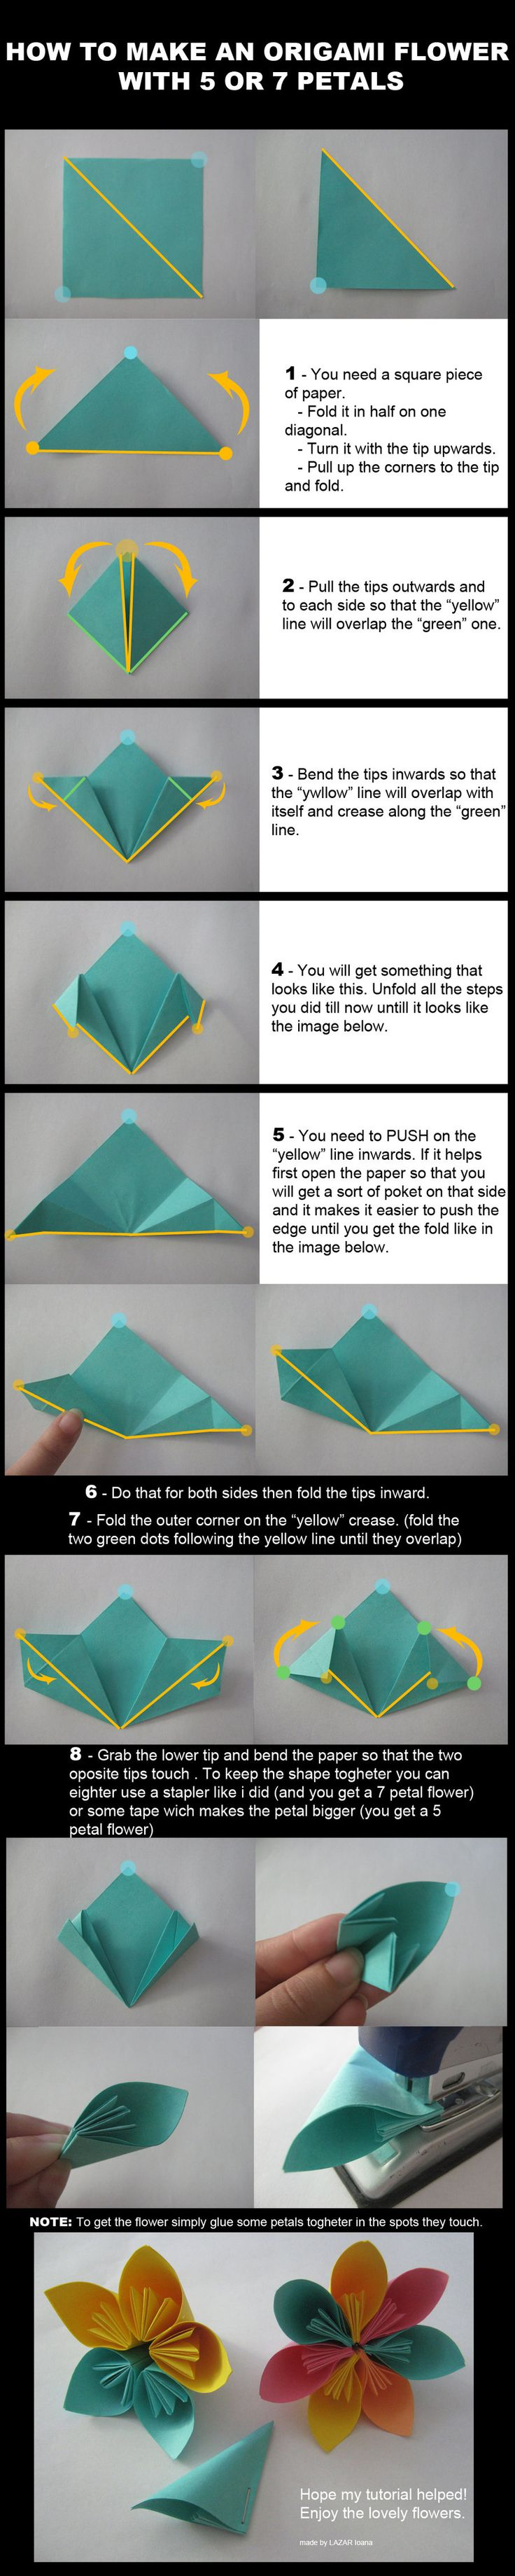 Origami Flower Tutorial by ~DarkUmah on deviantART - Tried it! its real easy :)